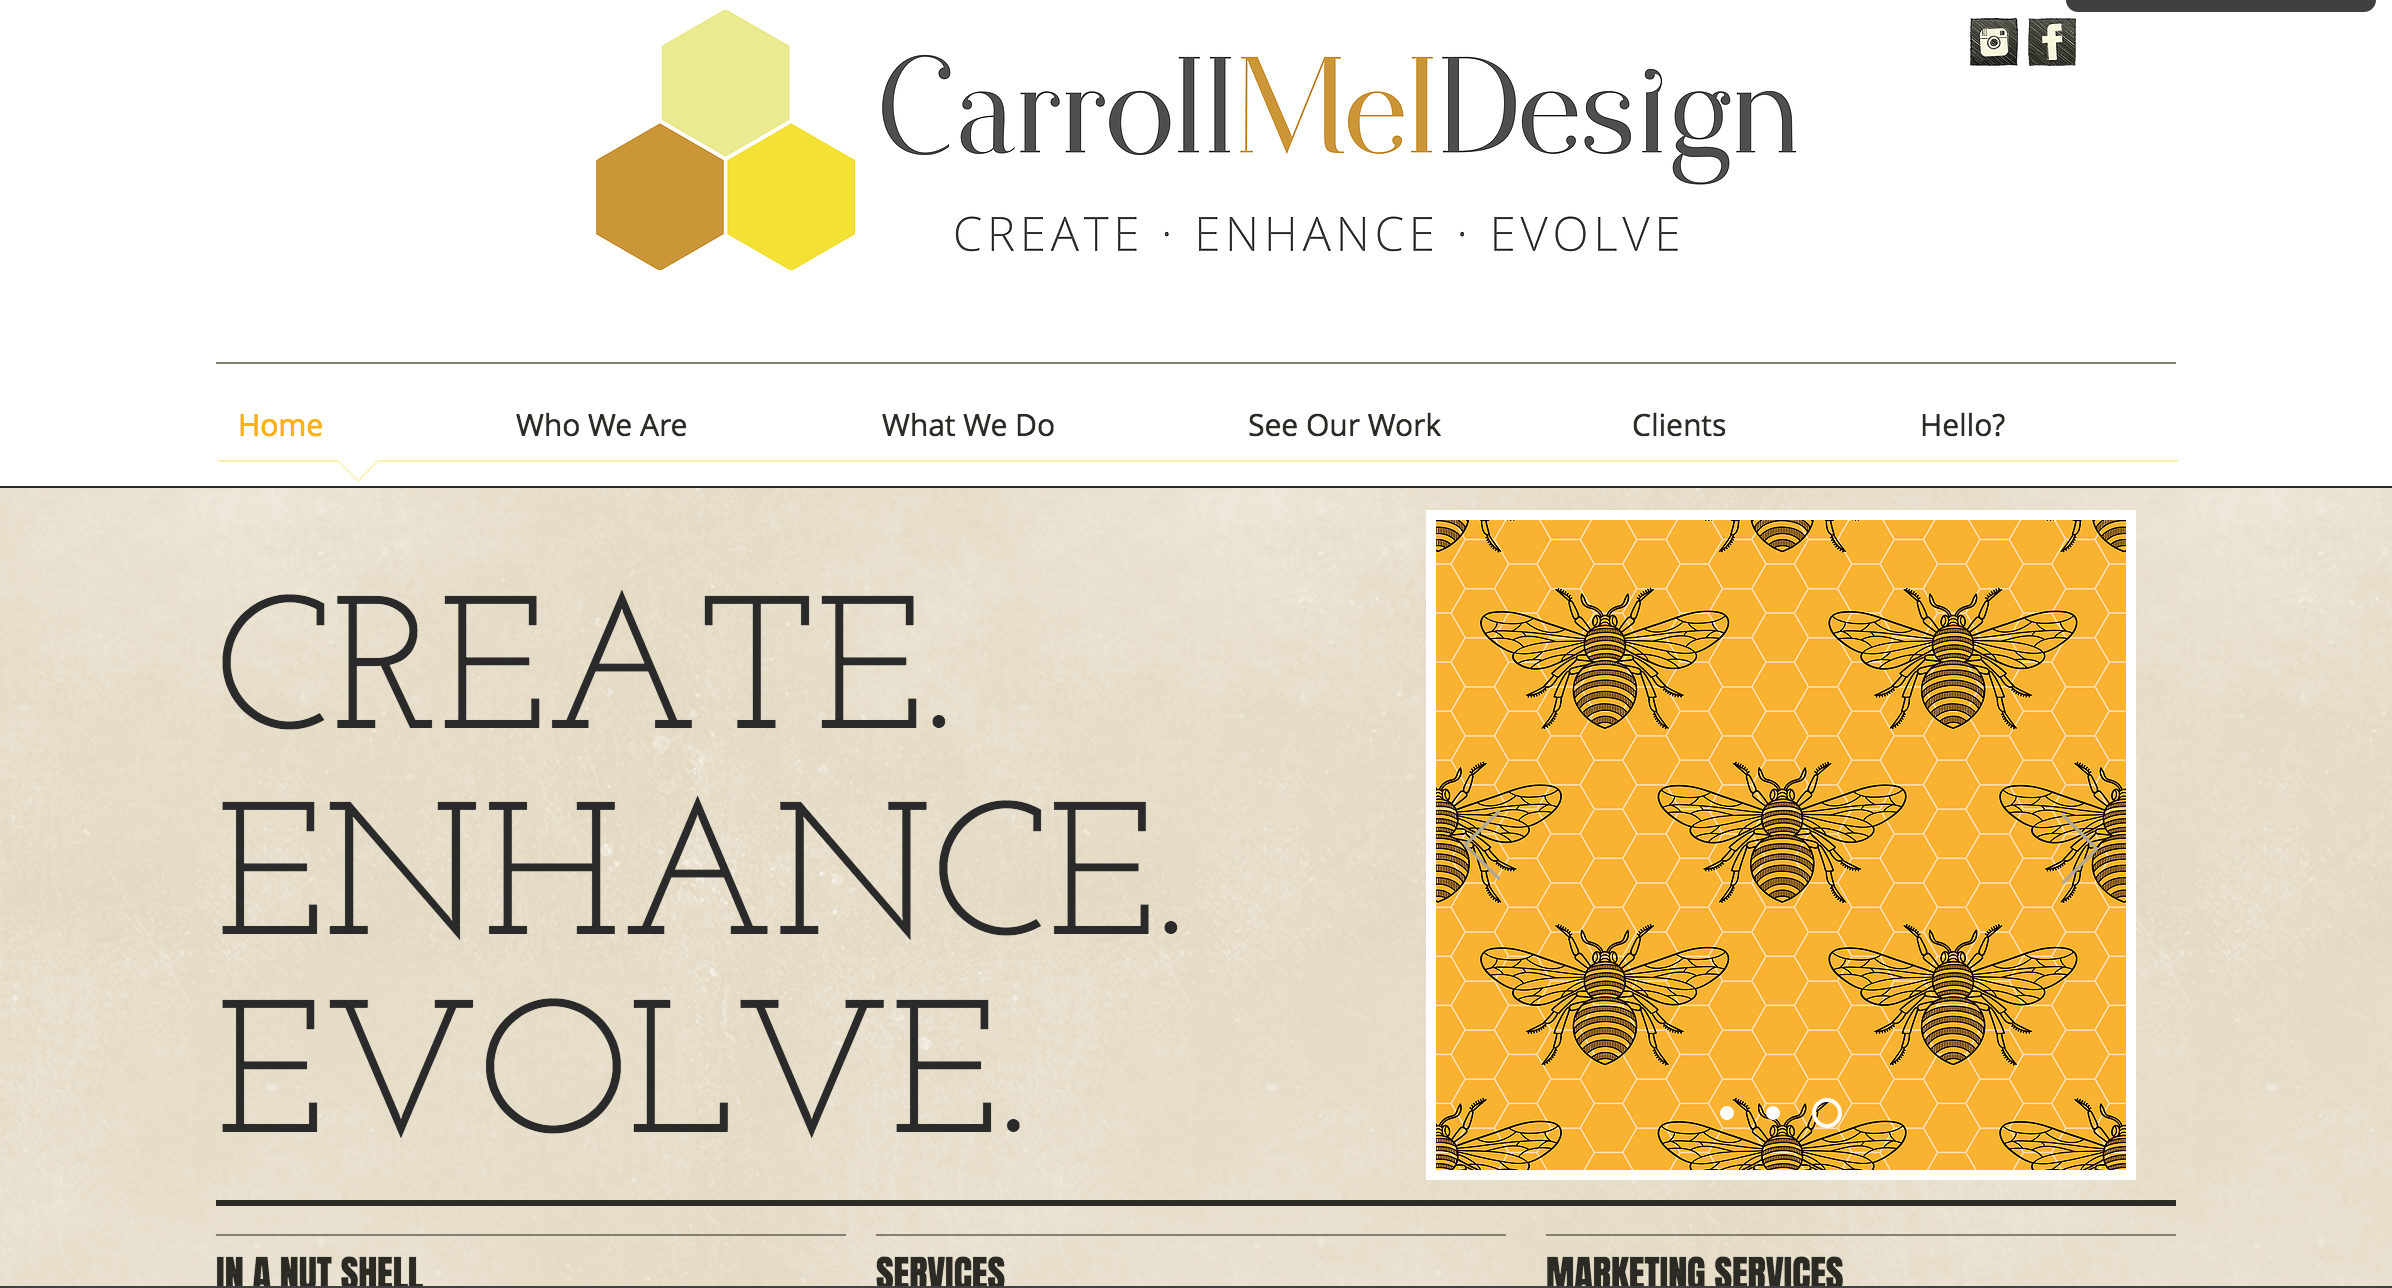 CarrollMel Design